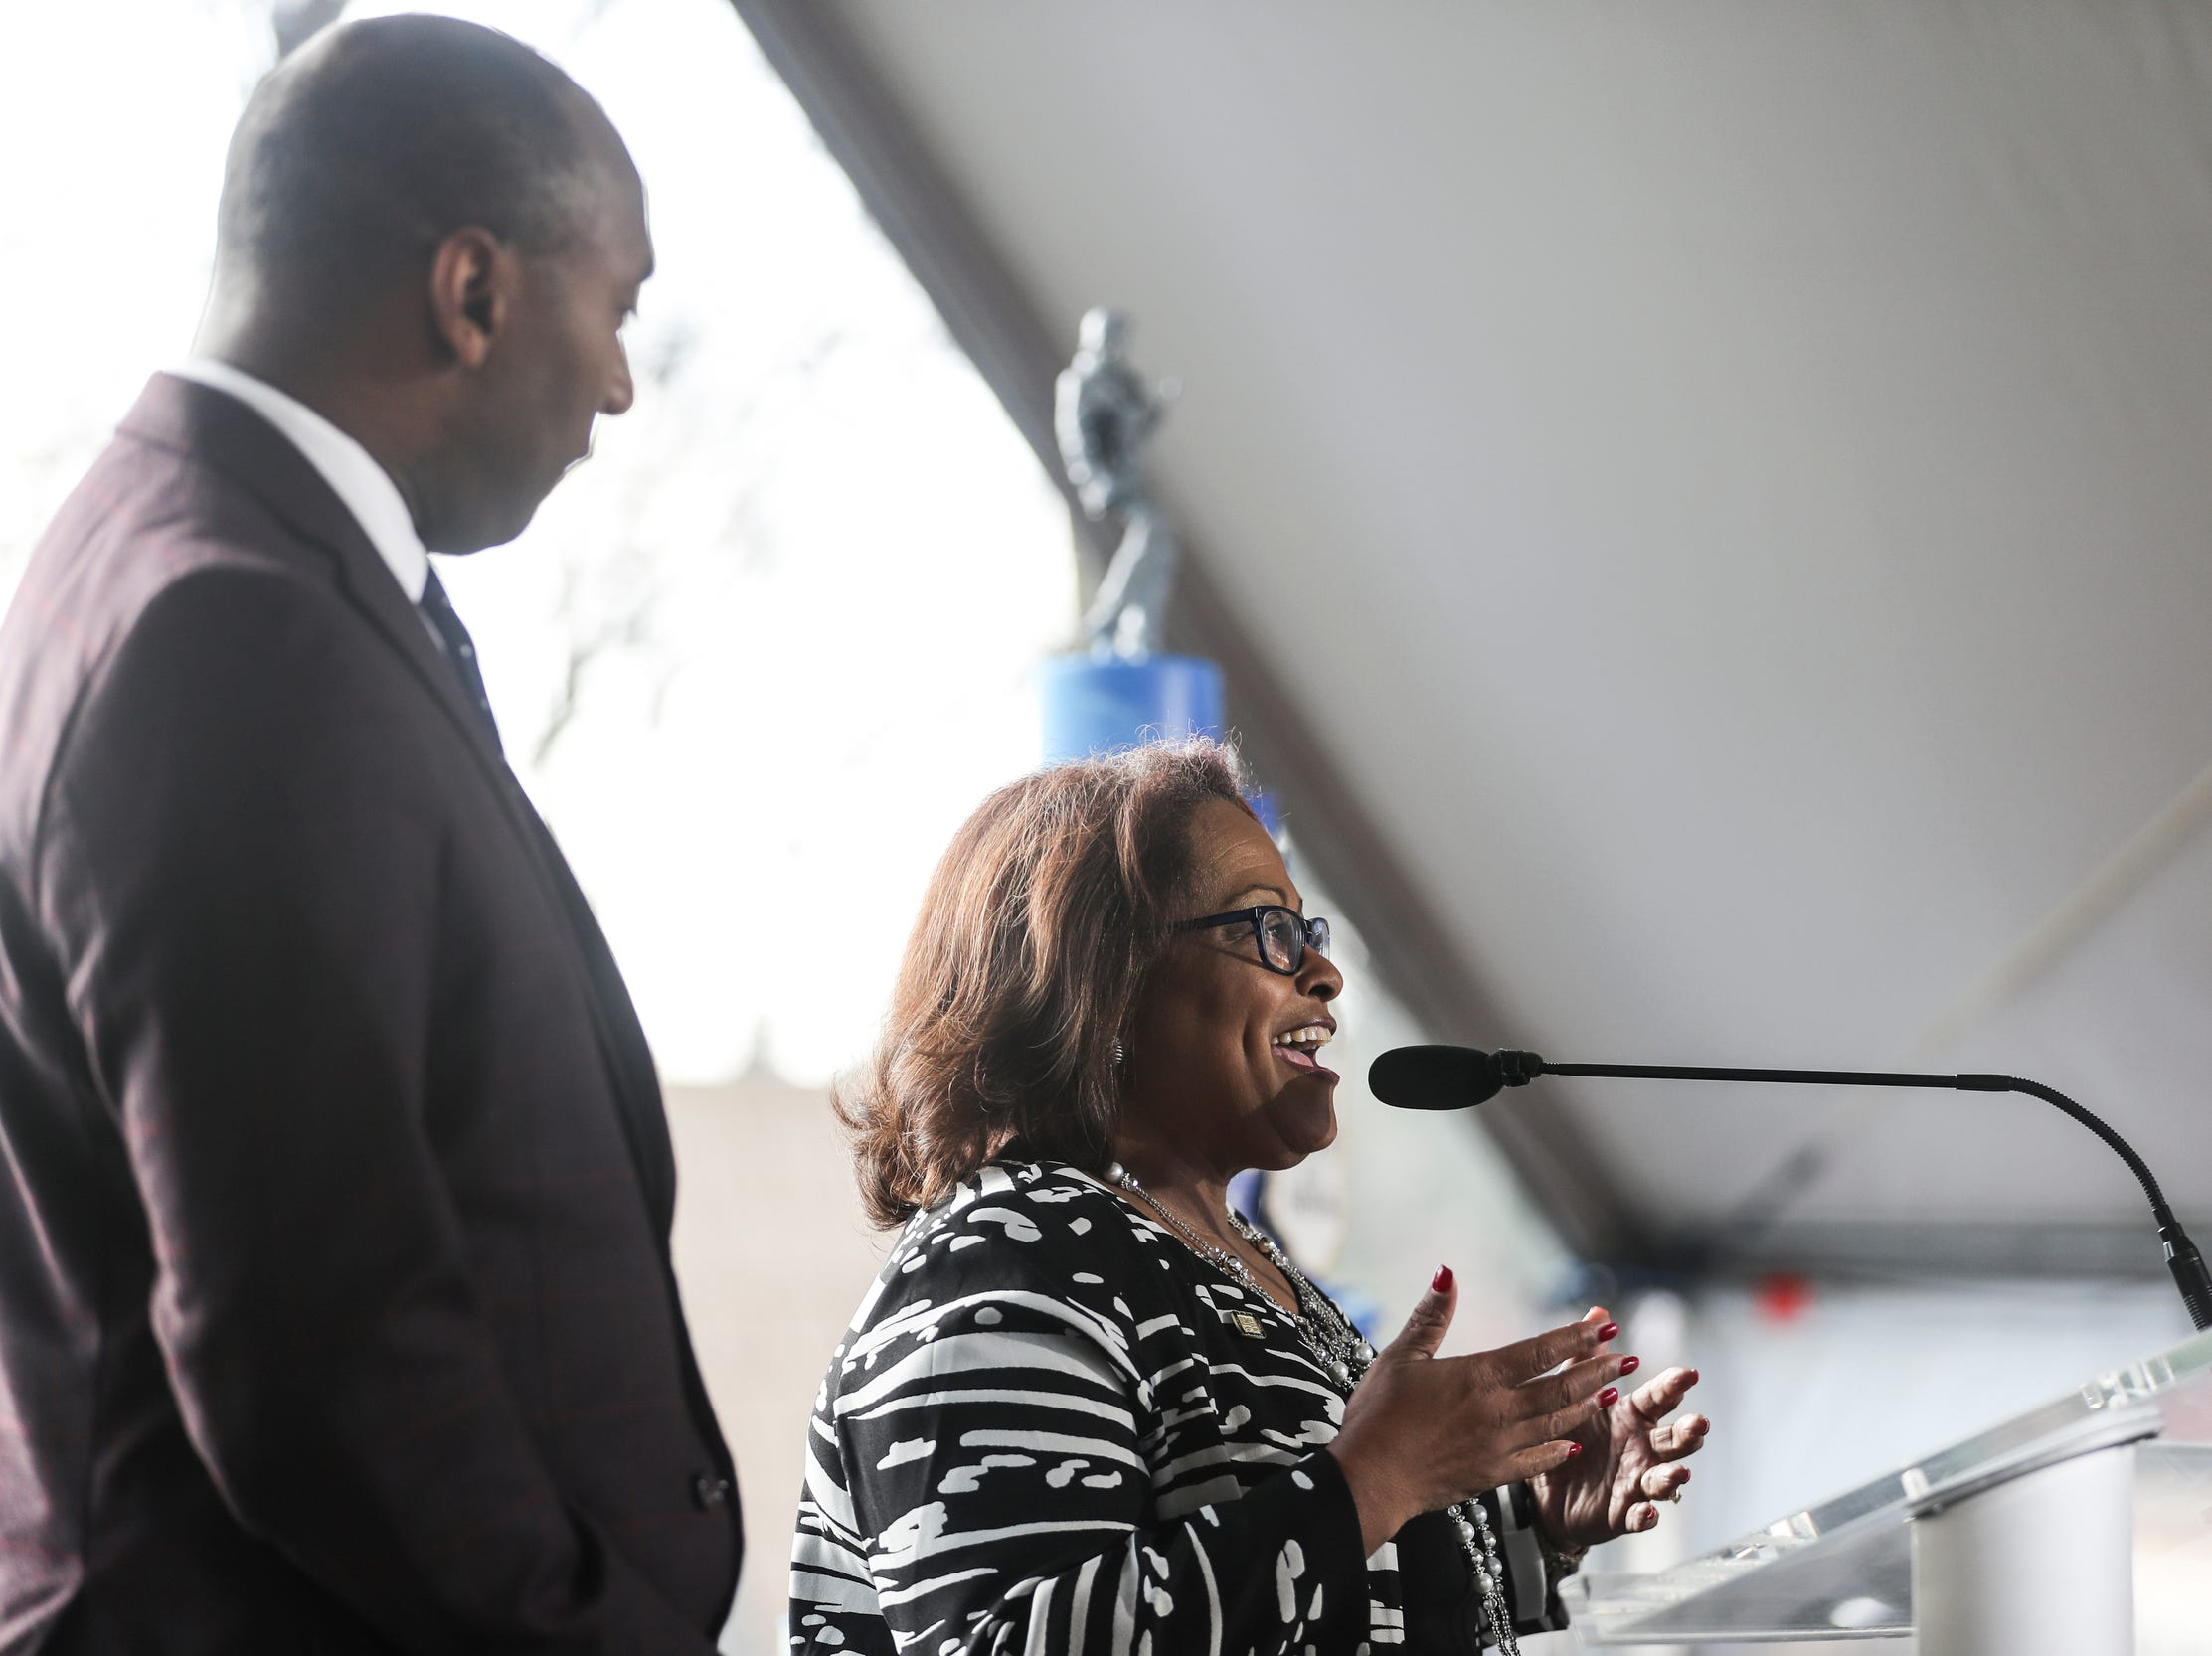 January 08 2019 - Councilwoman Patrice Jordan Robinson speaks during Tuesday's Elvis Birthday Proclamation Ceremony on Graceland's north lawn. Tuesday would have been Elvis' 84th birthday.